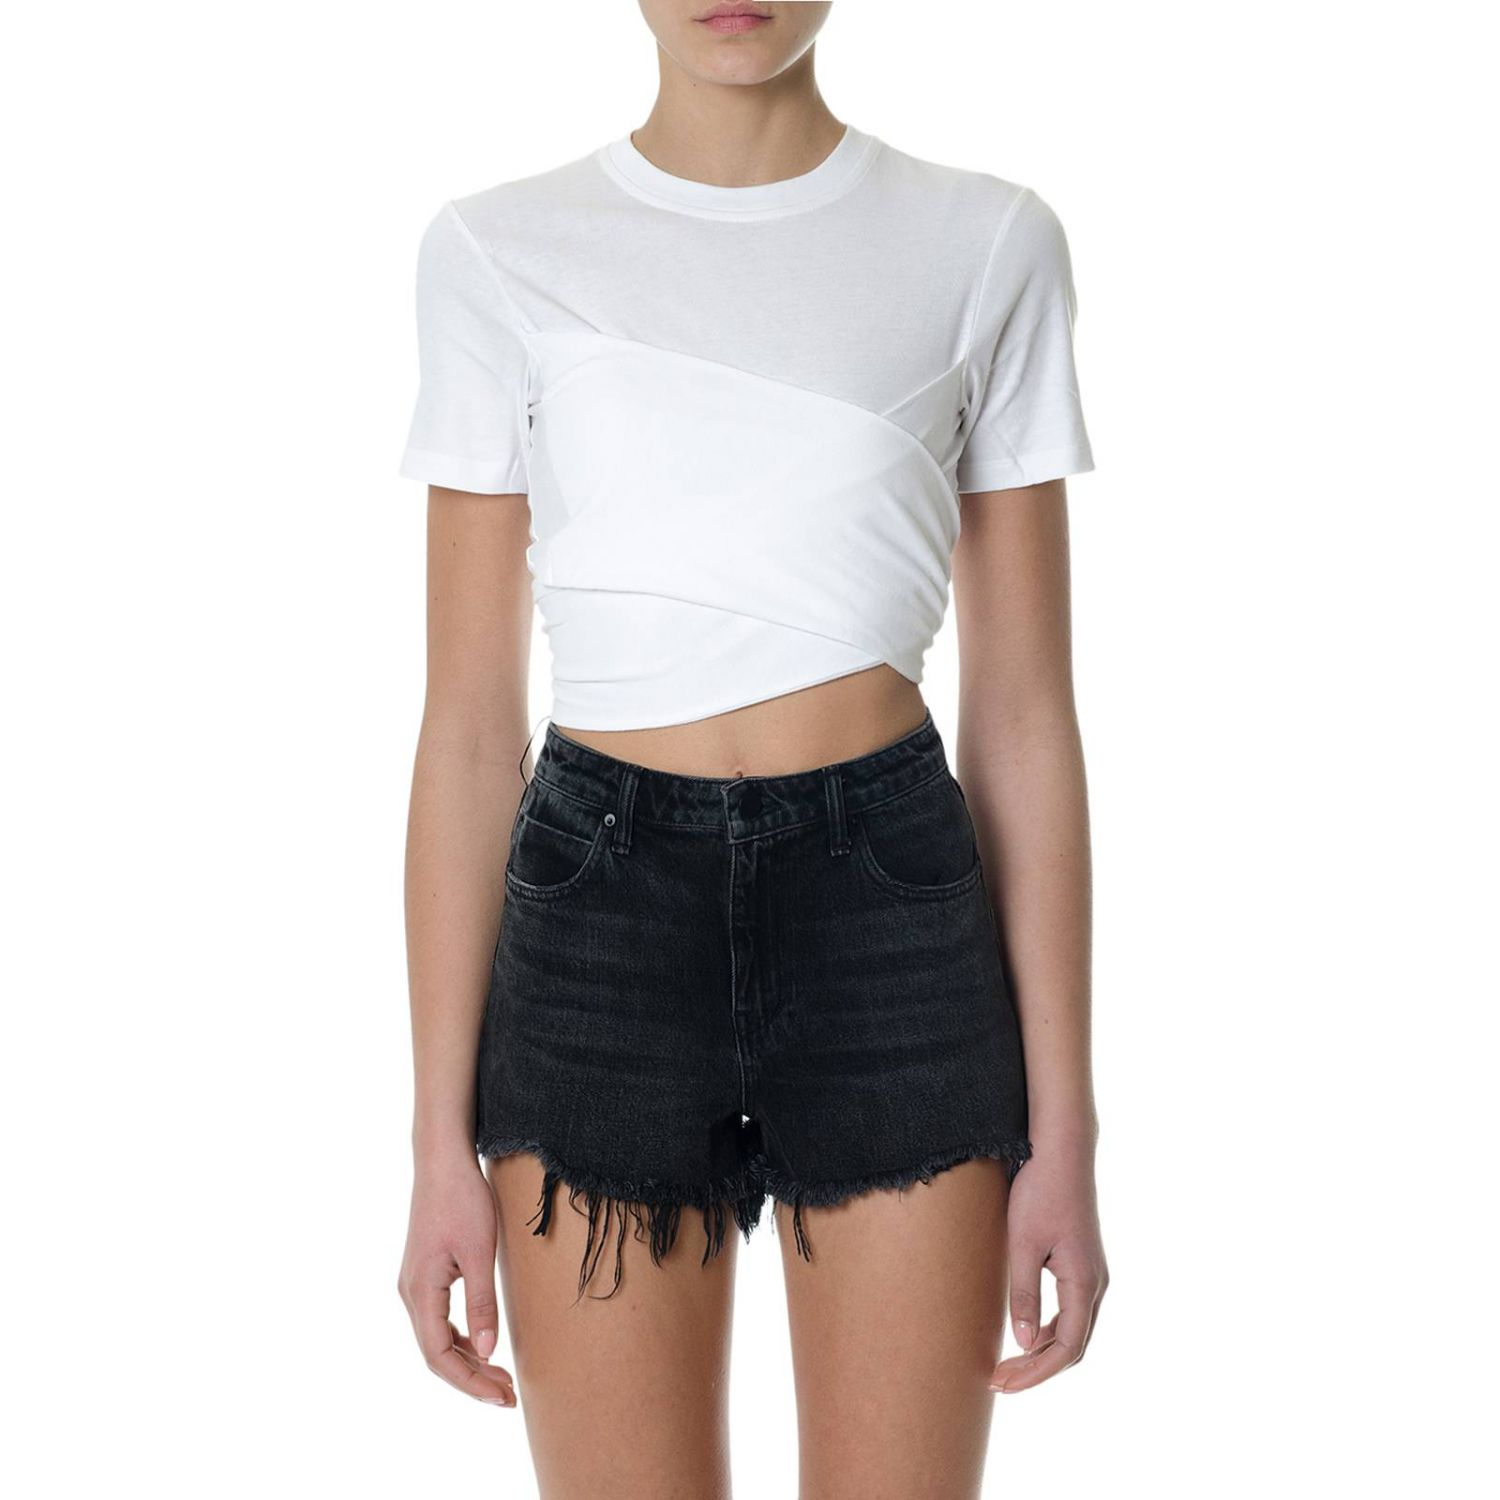 Top Top Women Alexander Wang 8361669